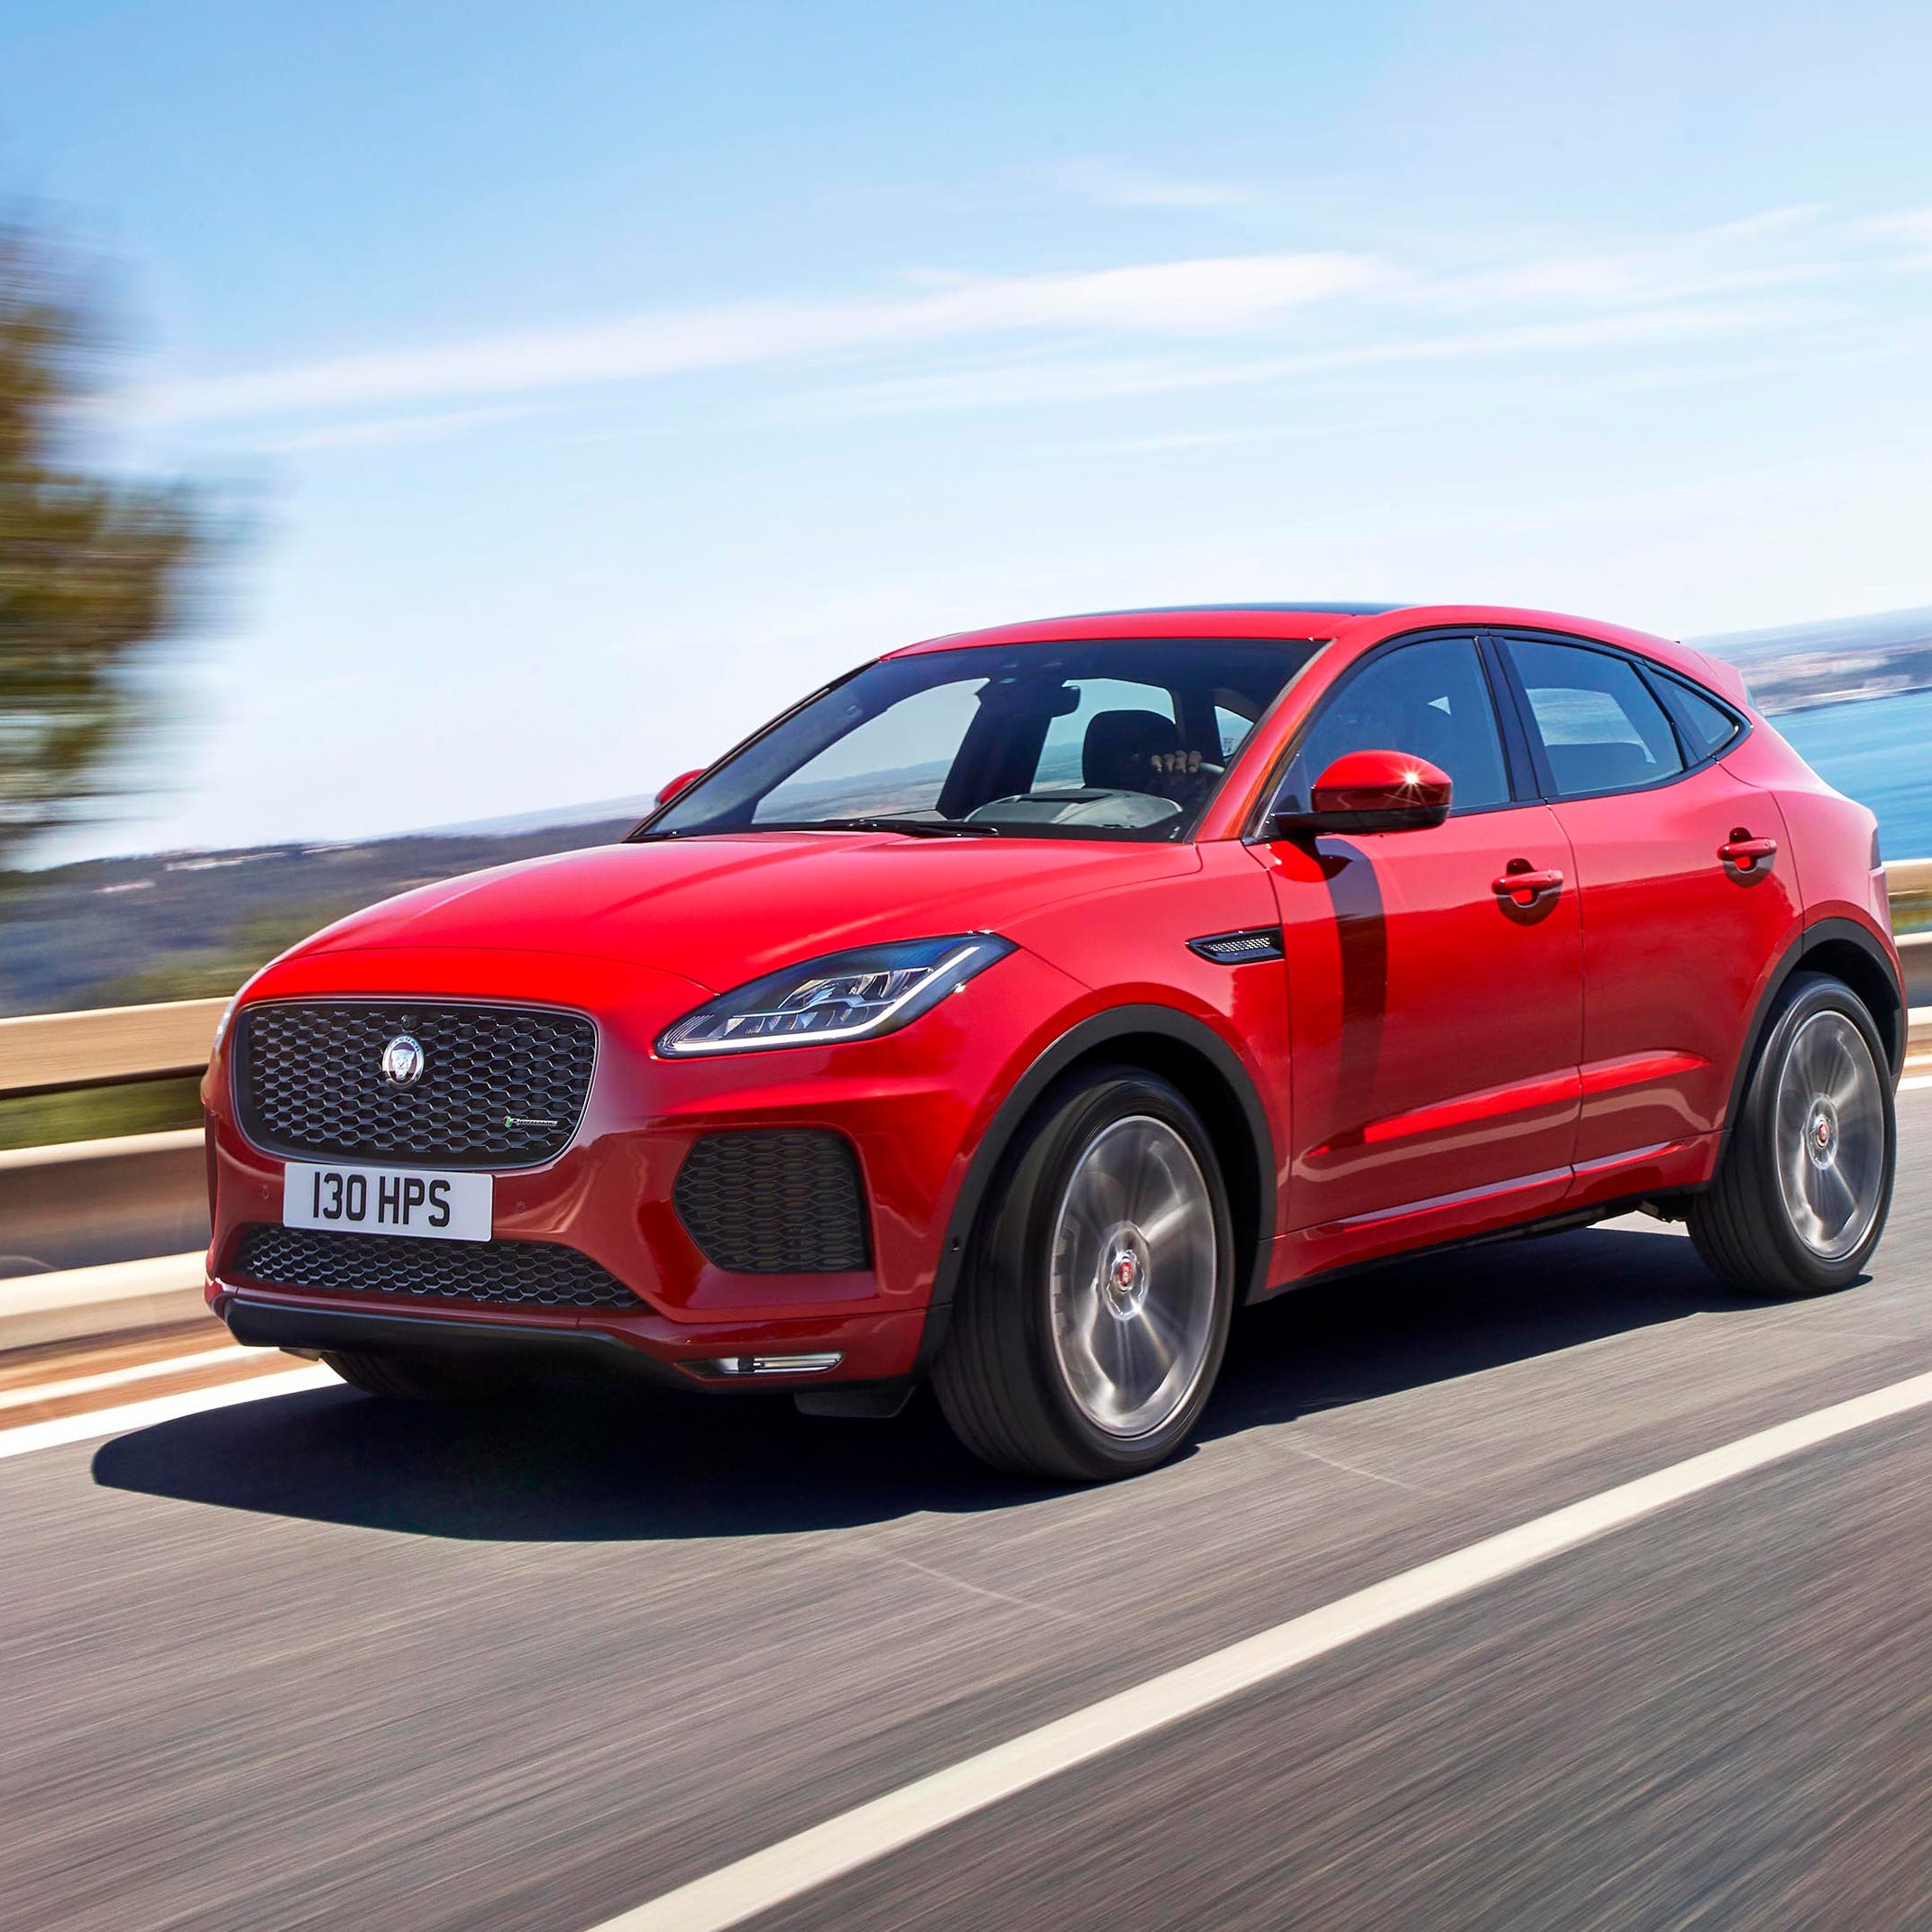 The 2018 E-Pace small SUV is Jaguar's future, but old problems remain